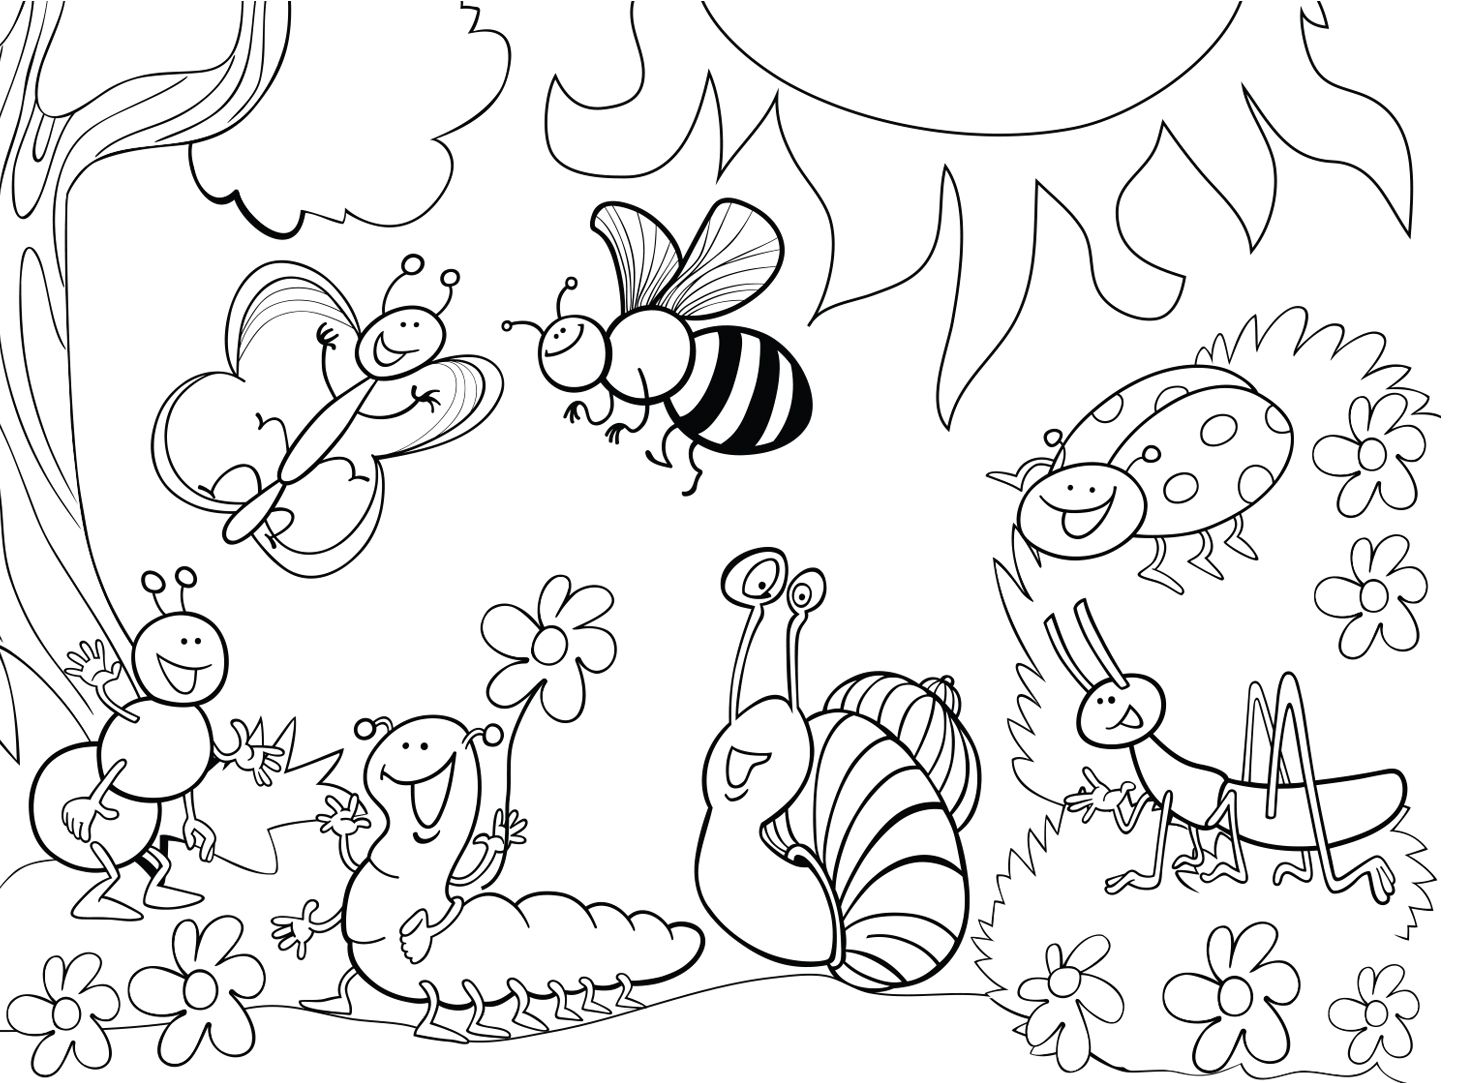 Free coloring pages garden - 21 Best Color Now Images On Pinterest Drawings Coloring Sheets And Animal Coloring Pages